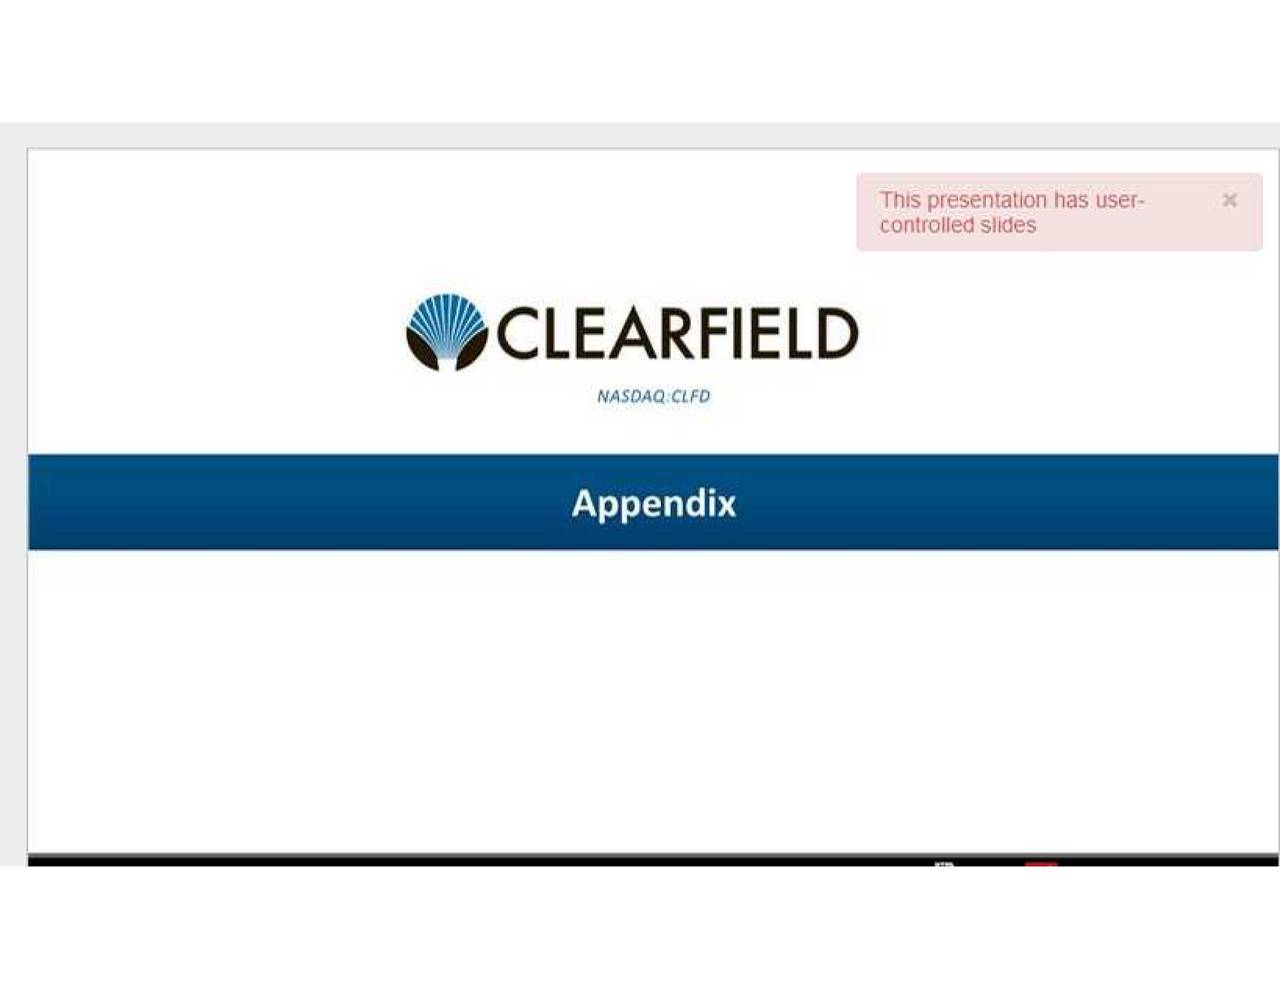 clearfield chat Clearfield, pa chat : are you from clearfield-pa you are very welcome to join our weirdtowncom chat clearfield, pa chat is the place where clearfield-pa chatters come to chat with anyone from anywhere around the world.